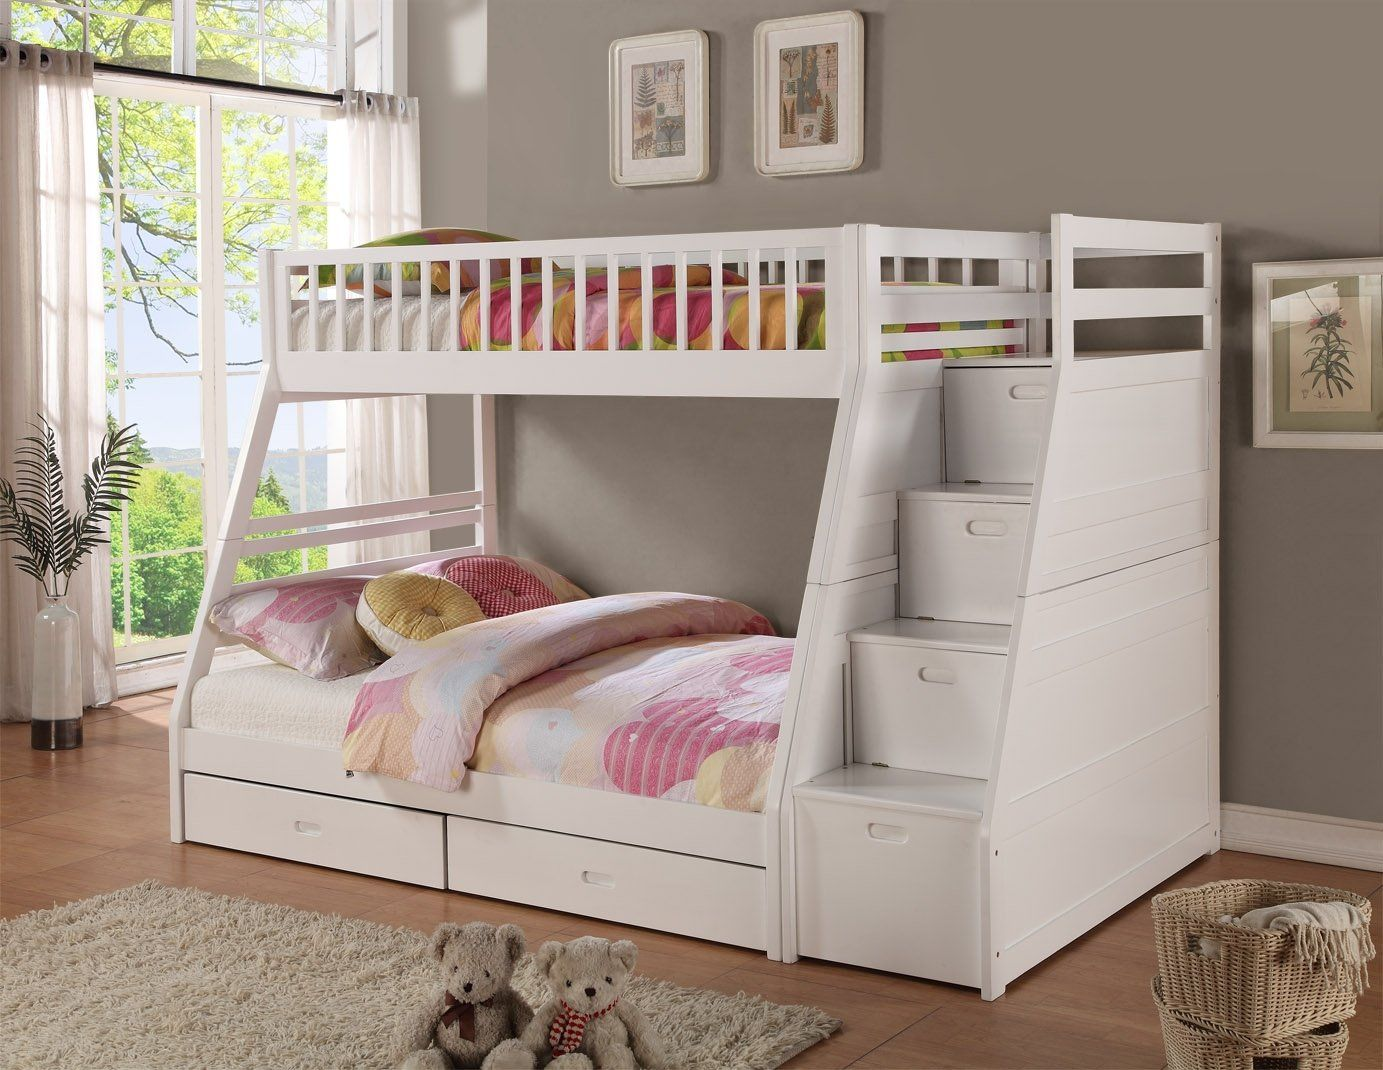 Amazon Com Twin Full Storage Step Bunk Bed 2 Drawers White